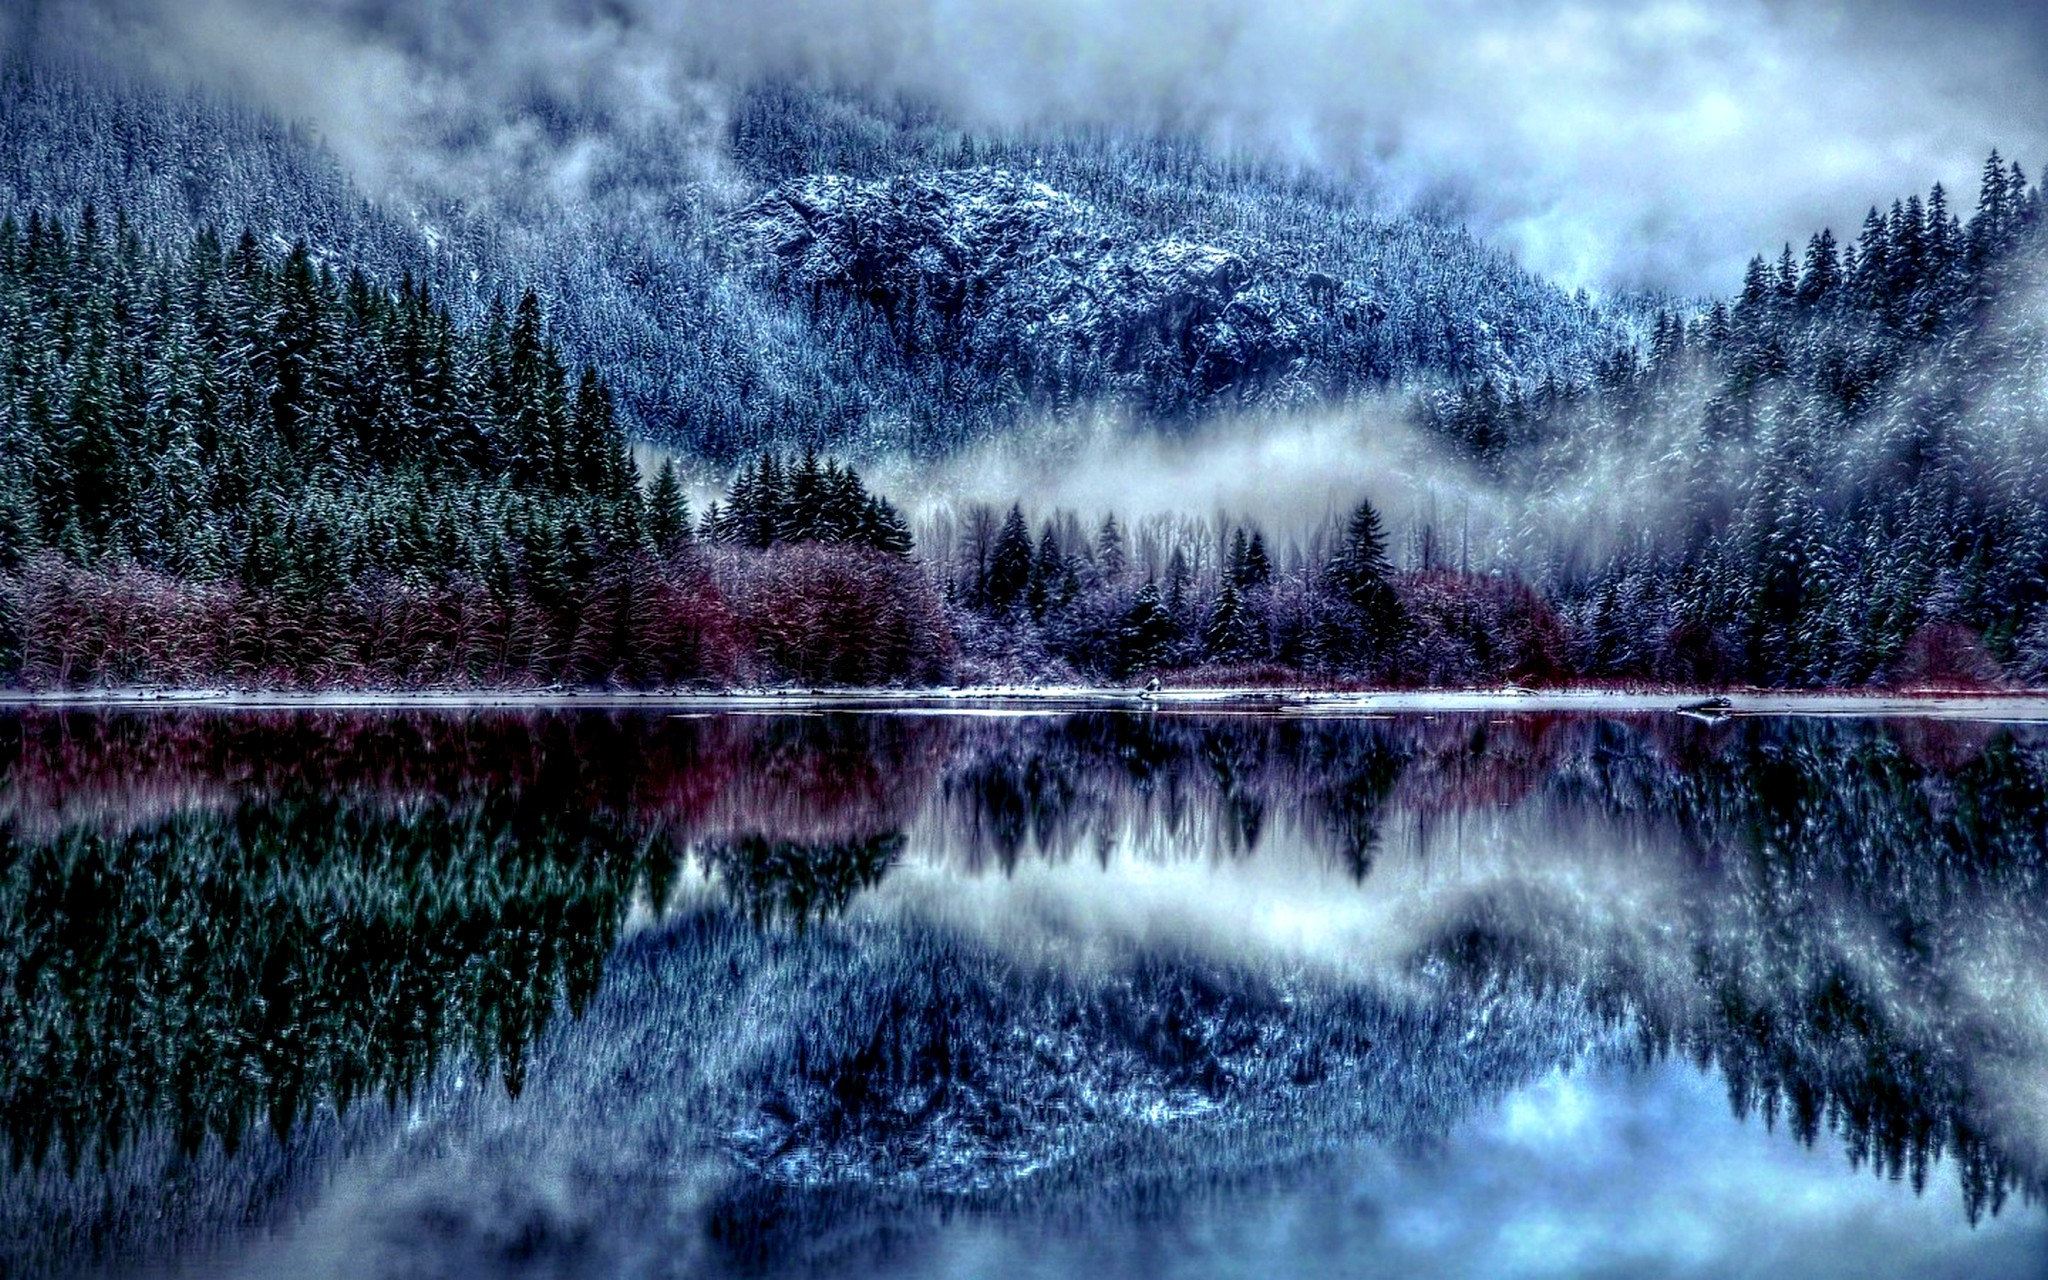 Winter Forest HD Wallpaper   Winter Season Desktop HD 2048x1280